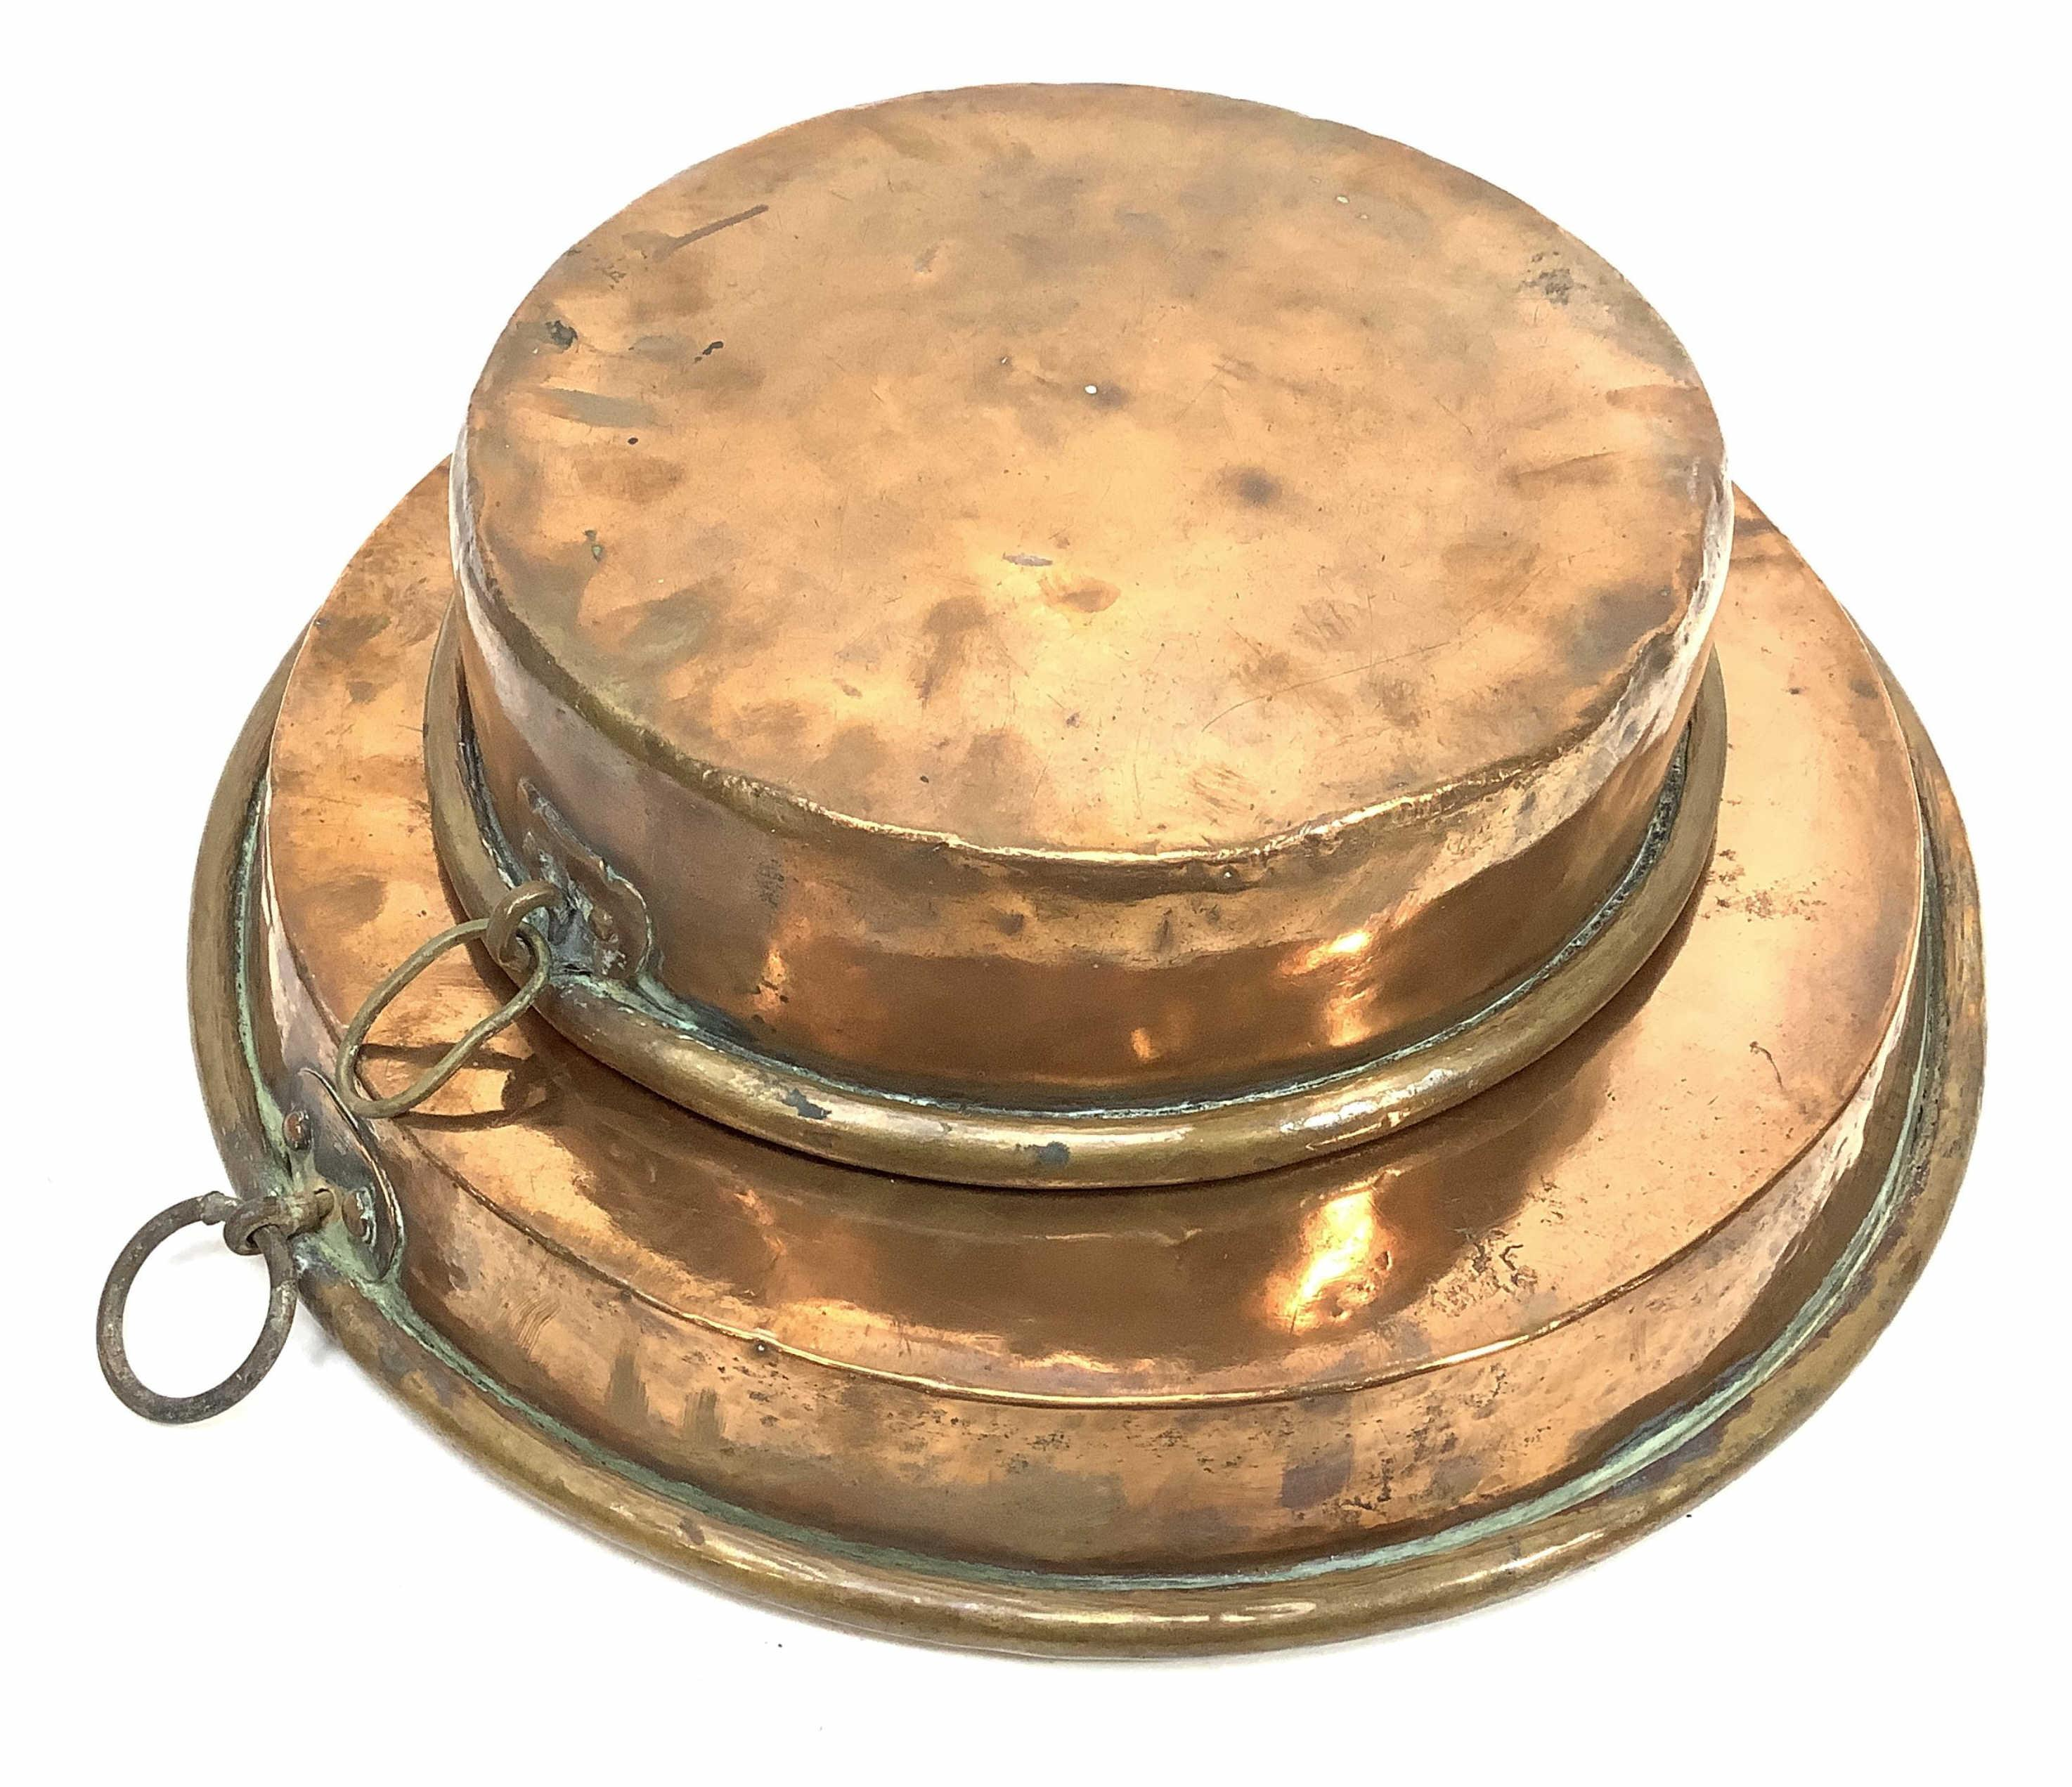 (2pc) 19th C. French Copper Cooking Pans